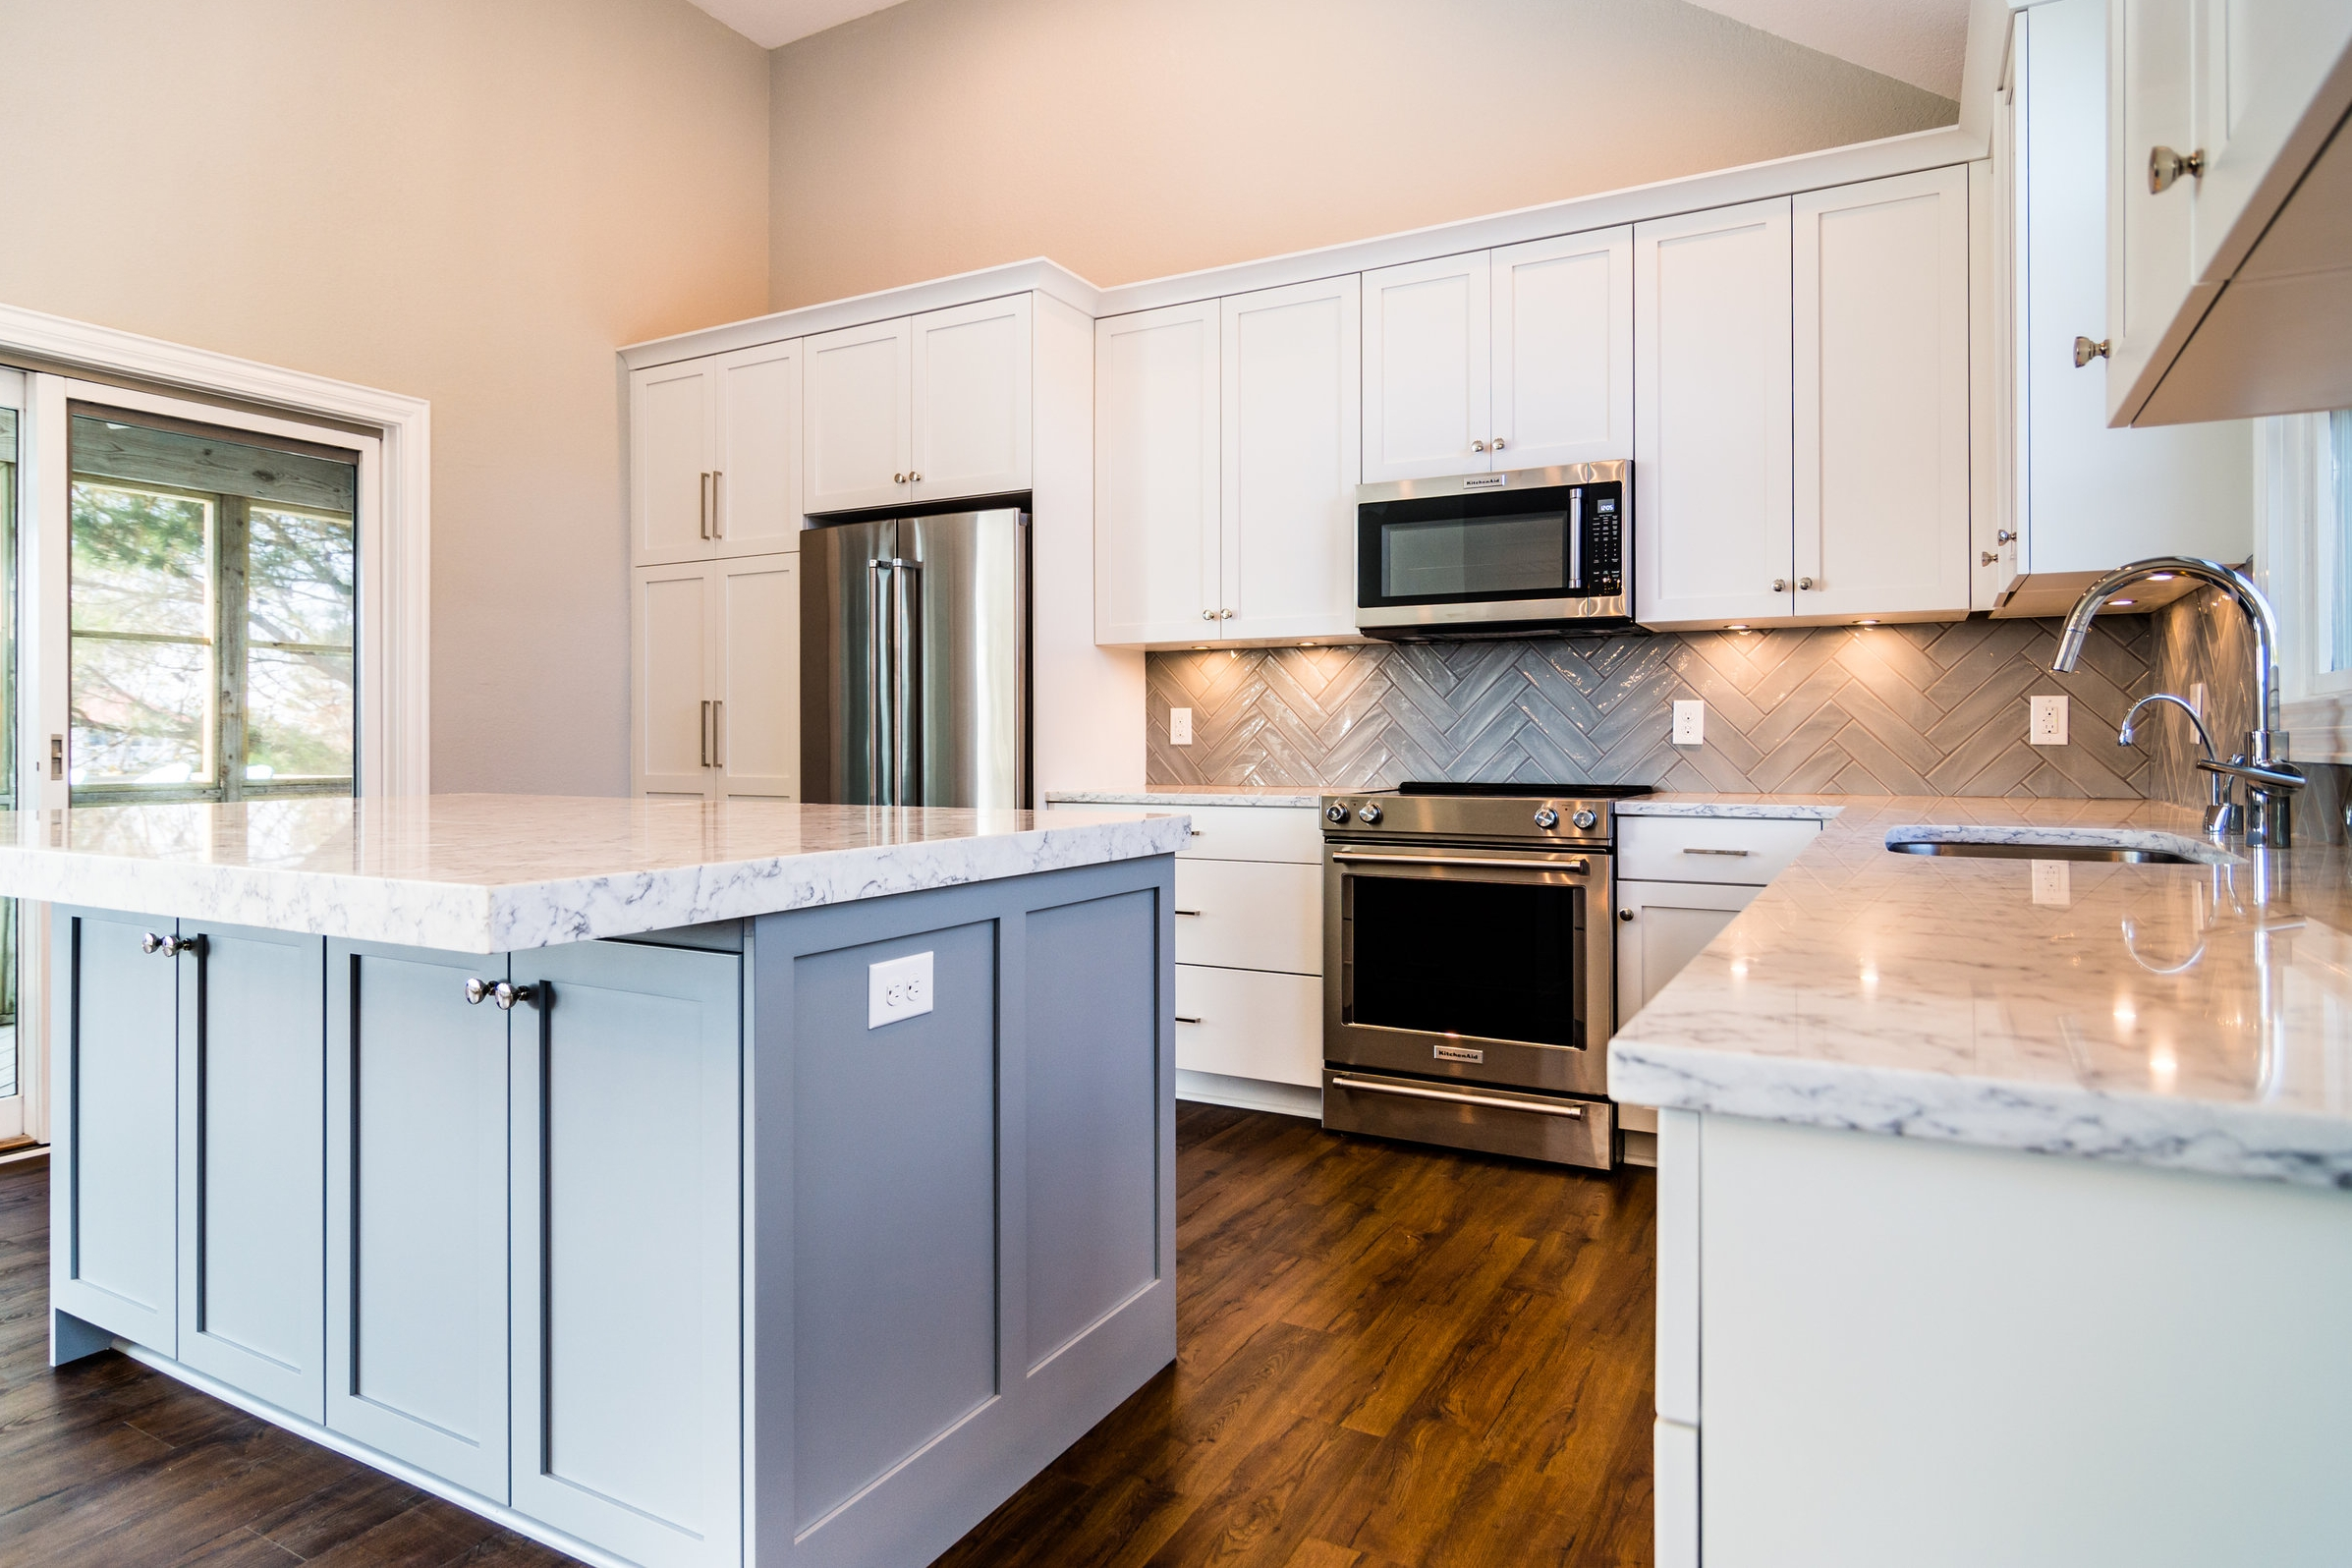 Your Dream - Design your semi-custom or custom home with our design-to-build team.